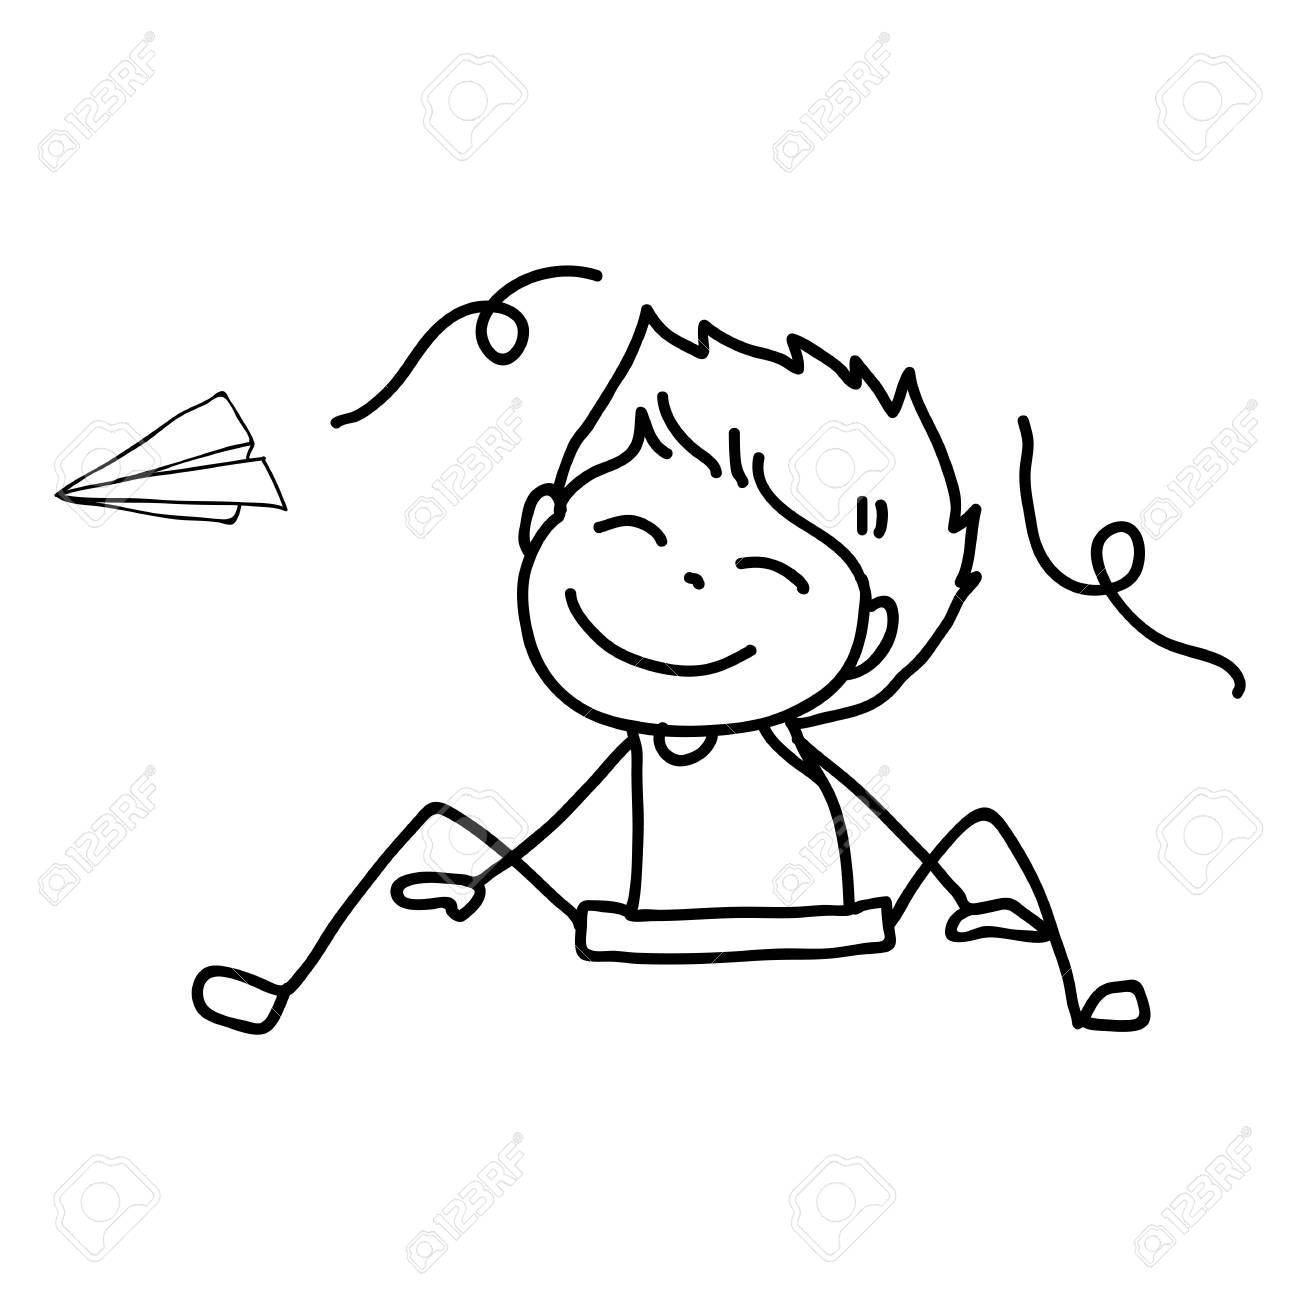 1300x1300 Hand Drawing Of A Boy And Paper Plane In Line Art Royalty Free